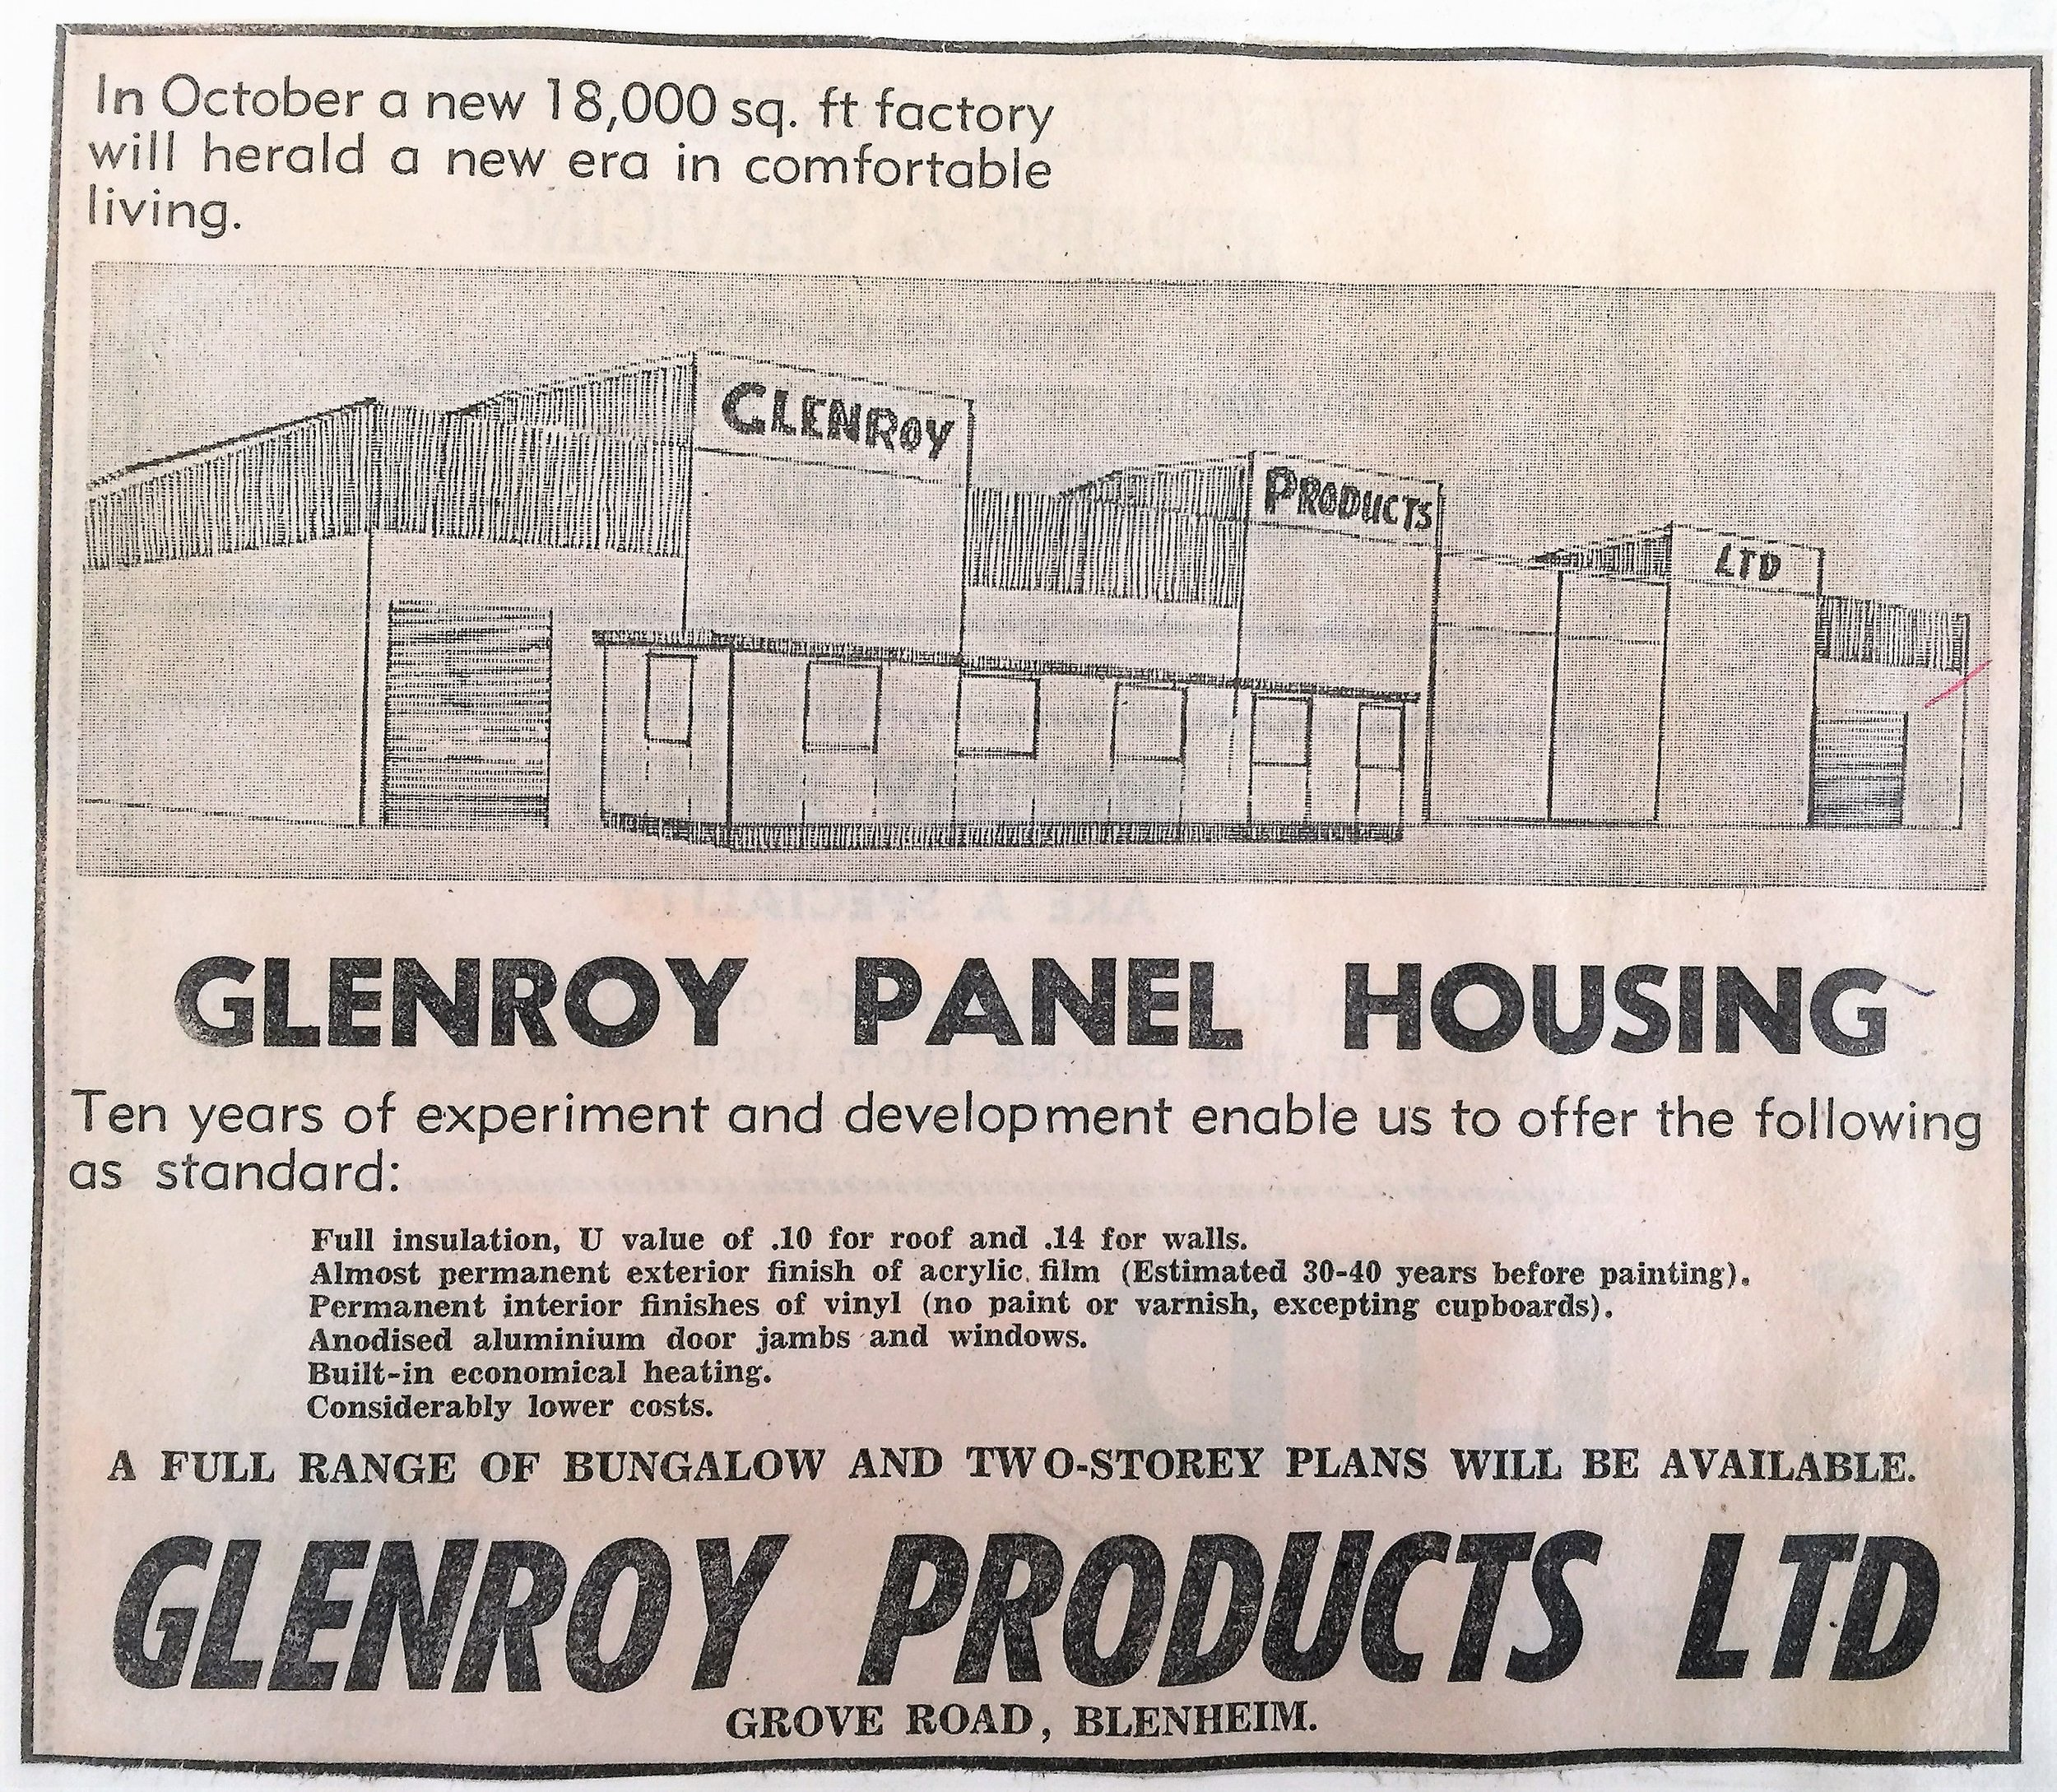 New Factory Premises - It was an exciting day the company expanded into new premises and a new factory in June 1973.